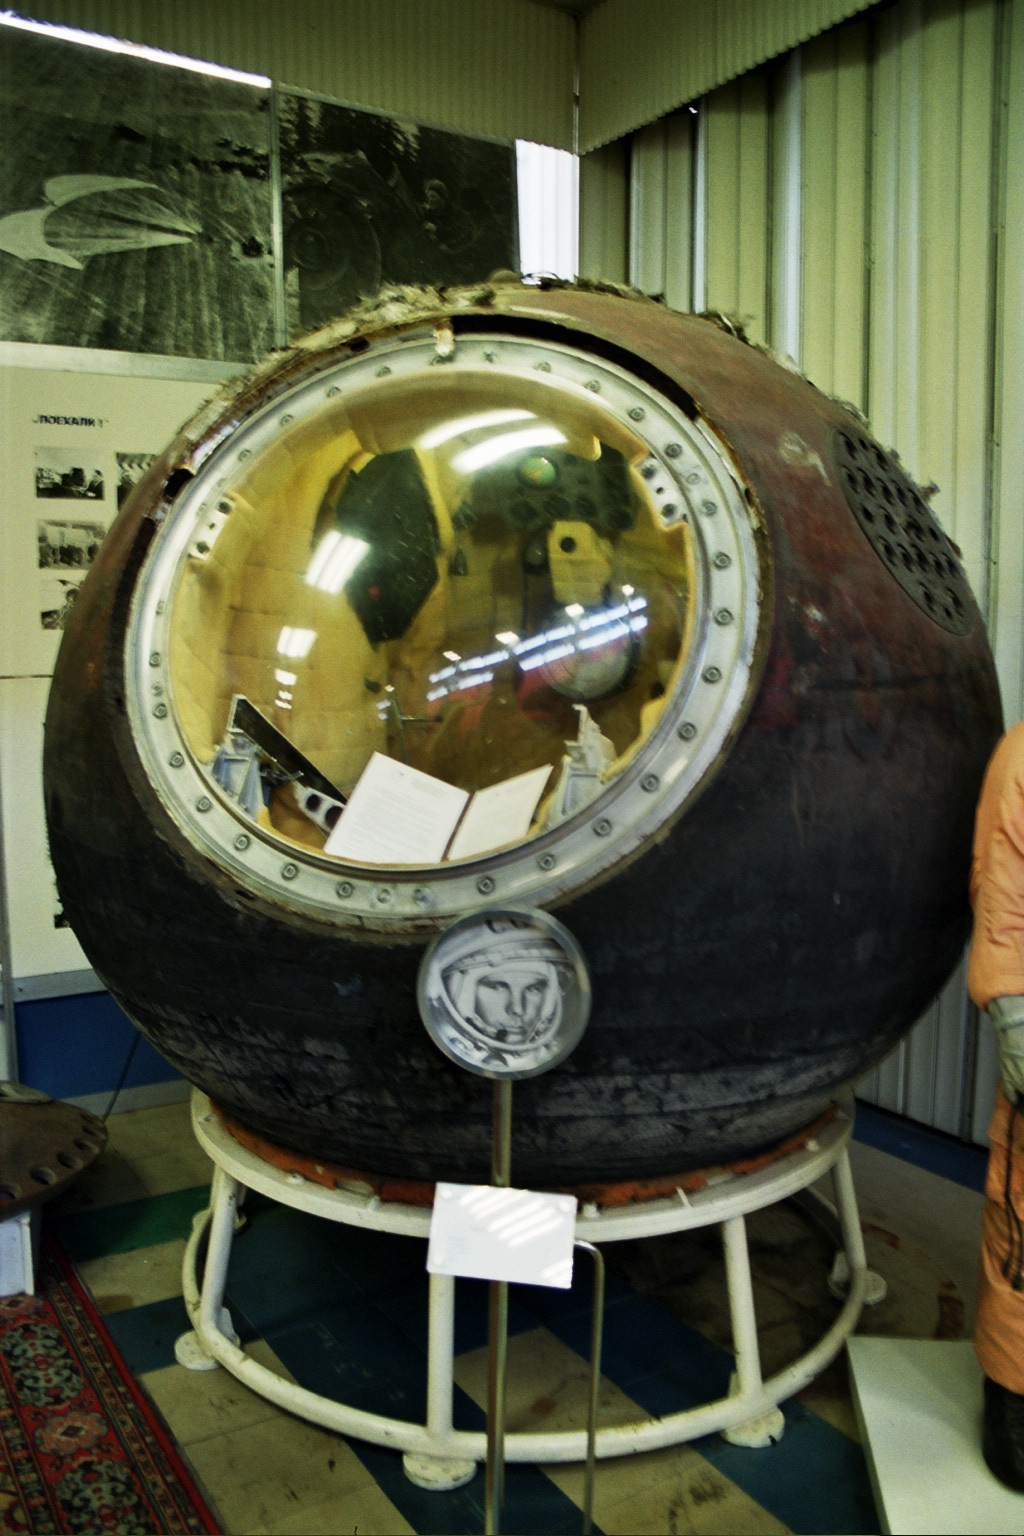 Gagarin's flown spacecraft on display outside Moscow.